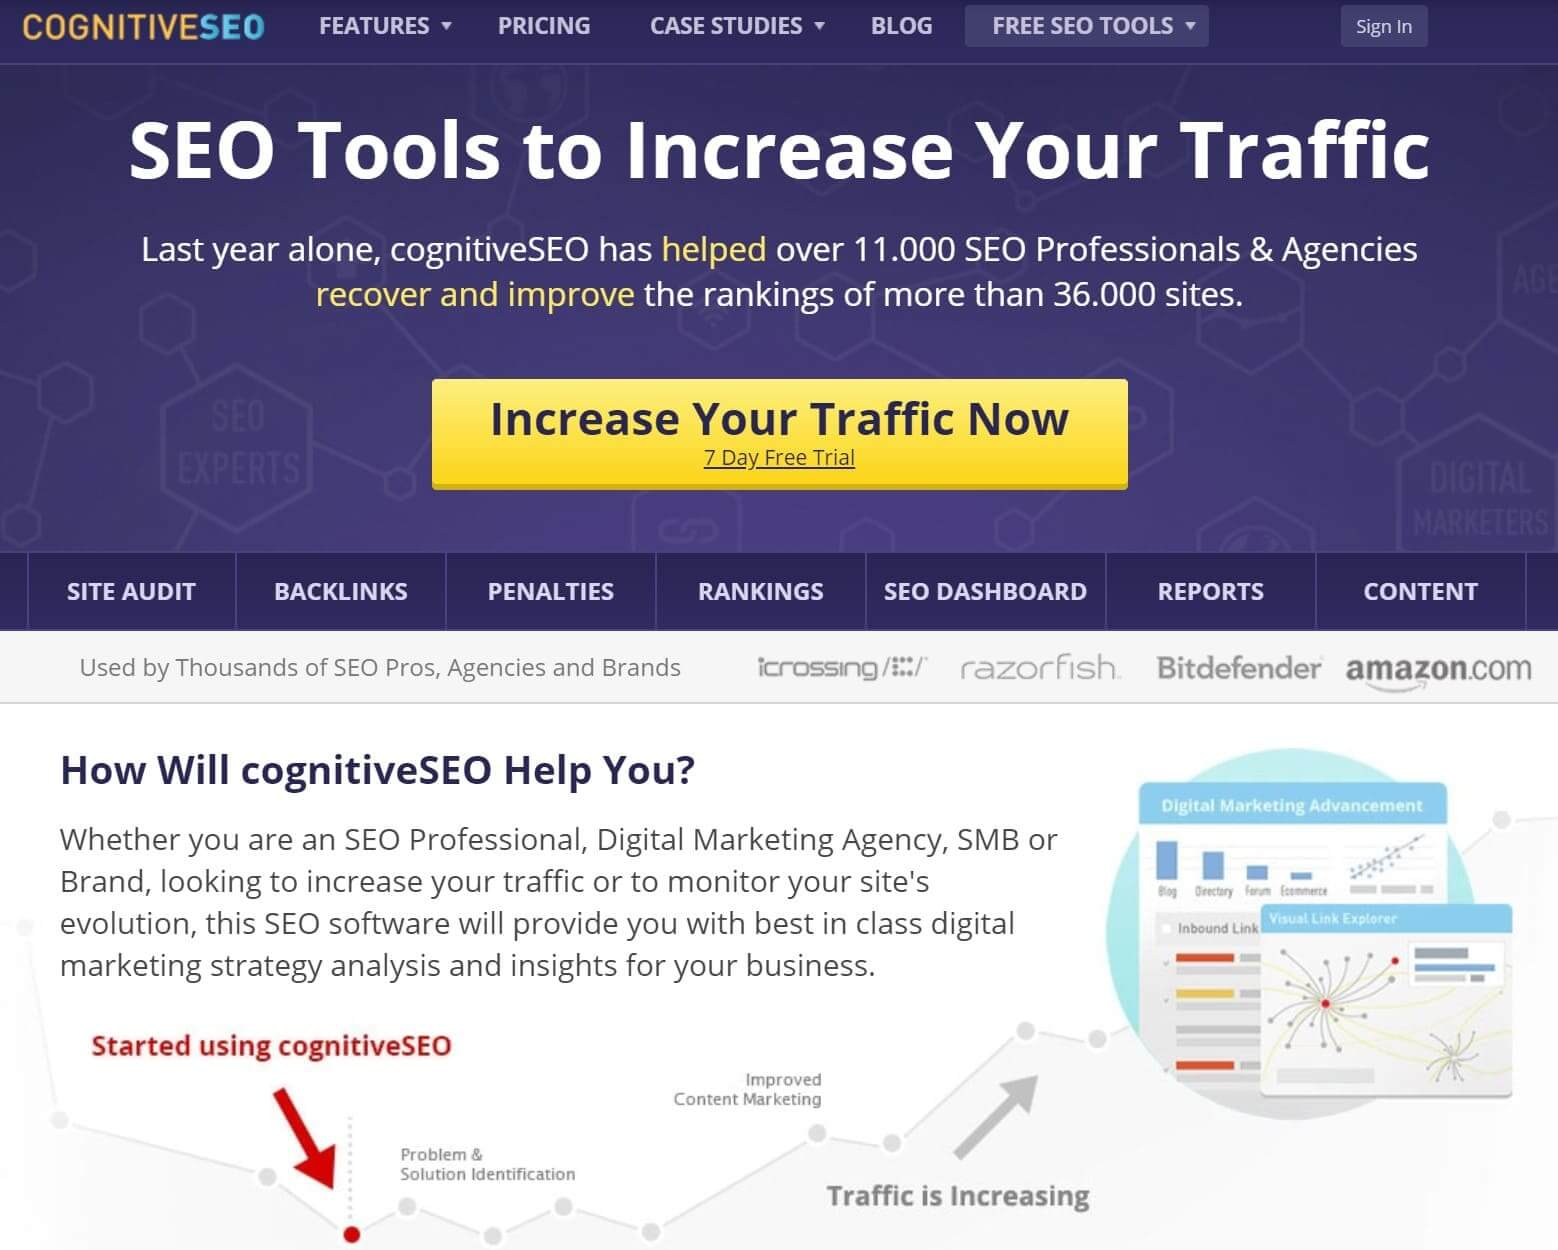 CognitiveSEO's website